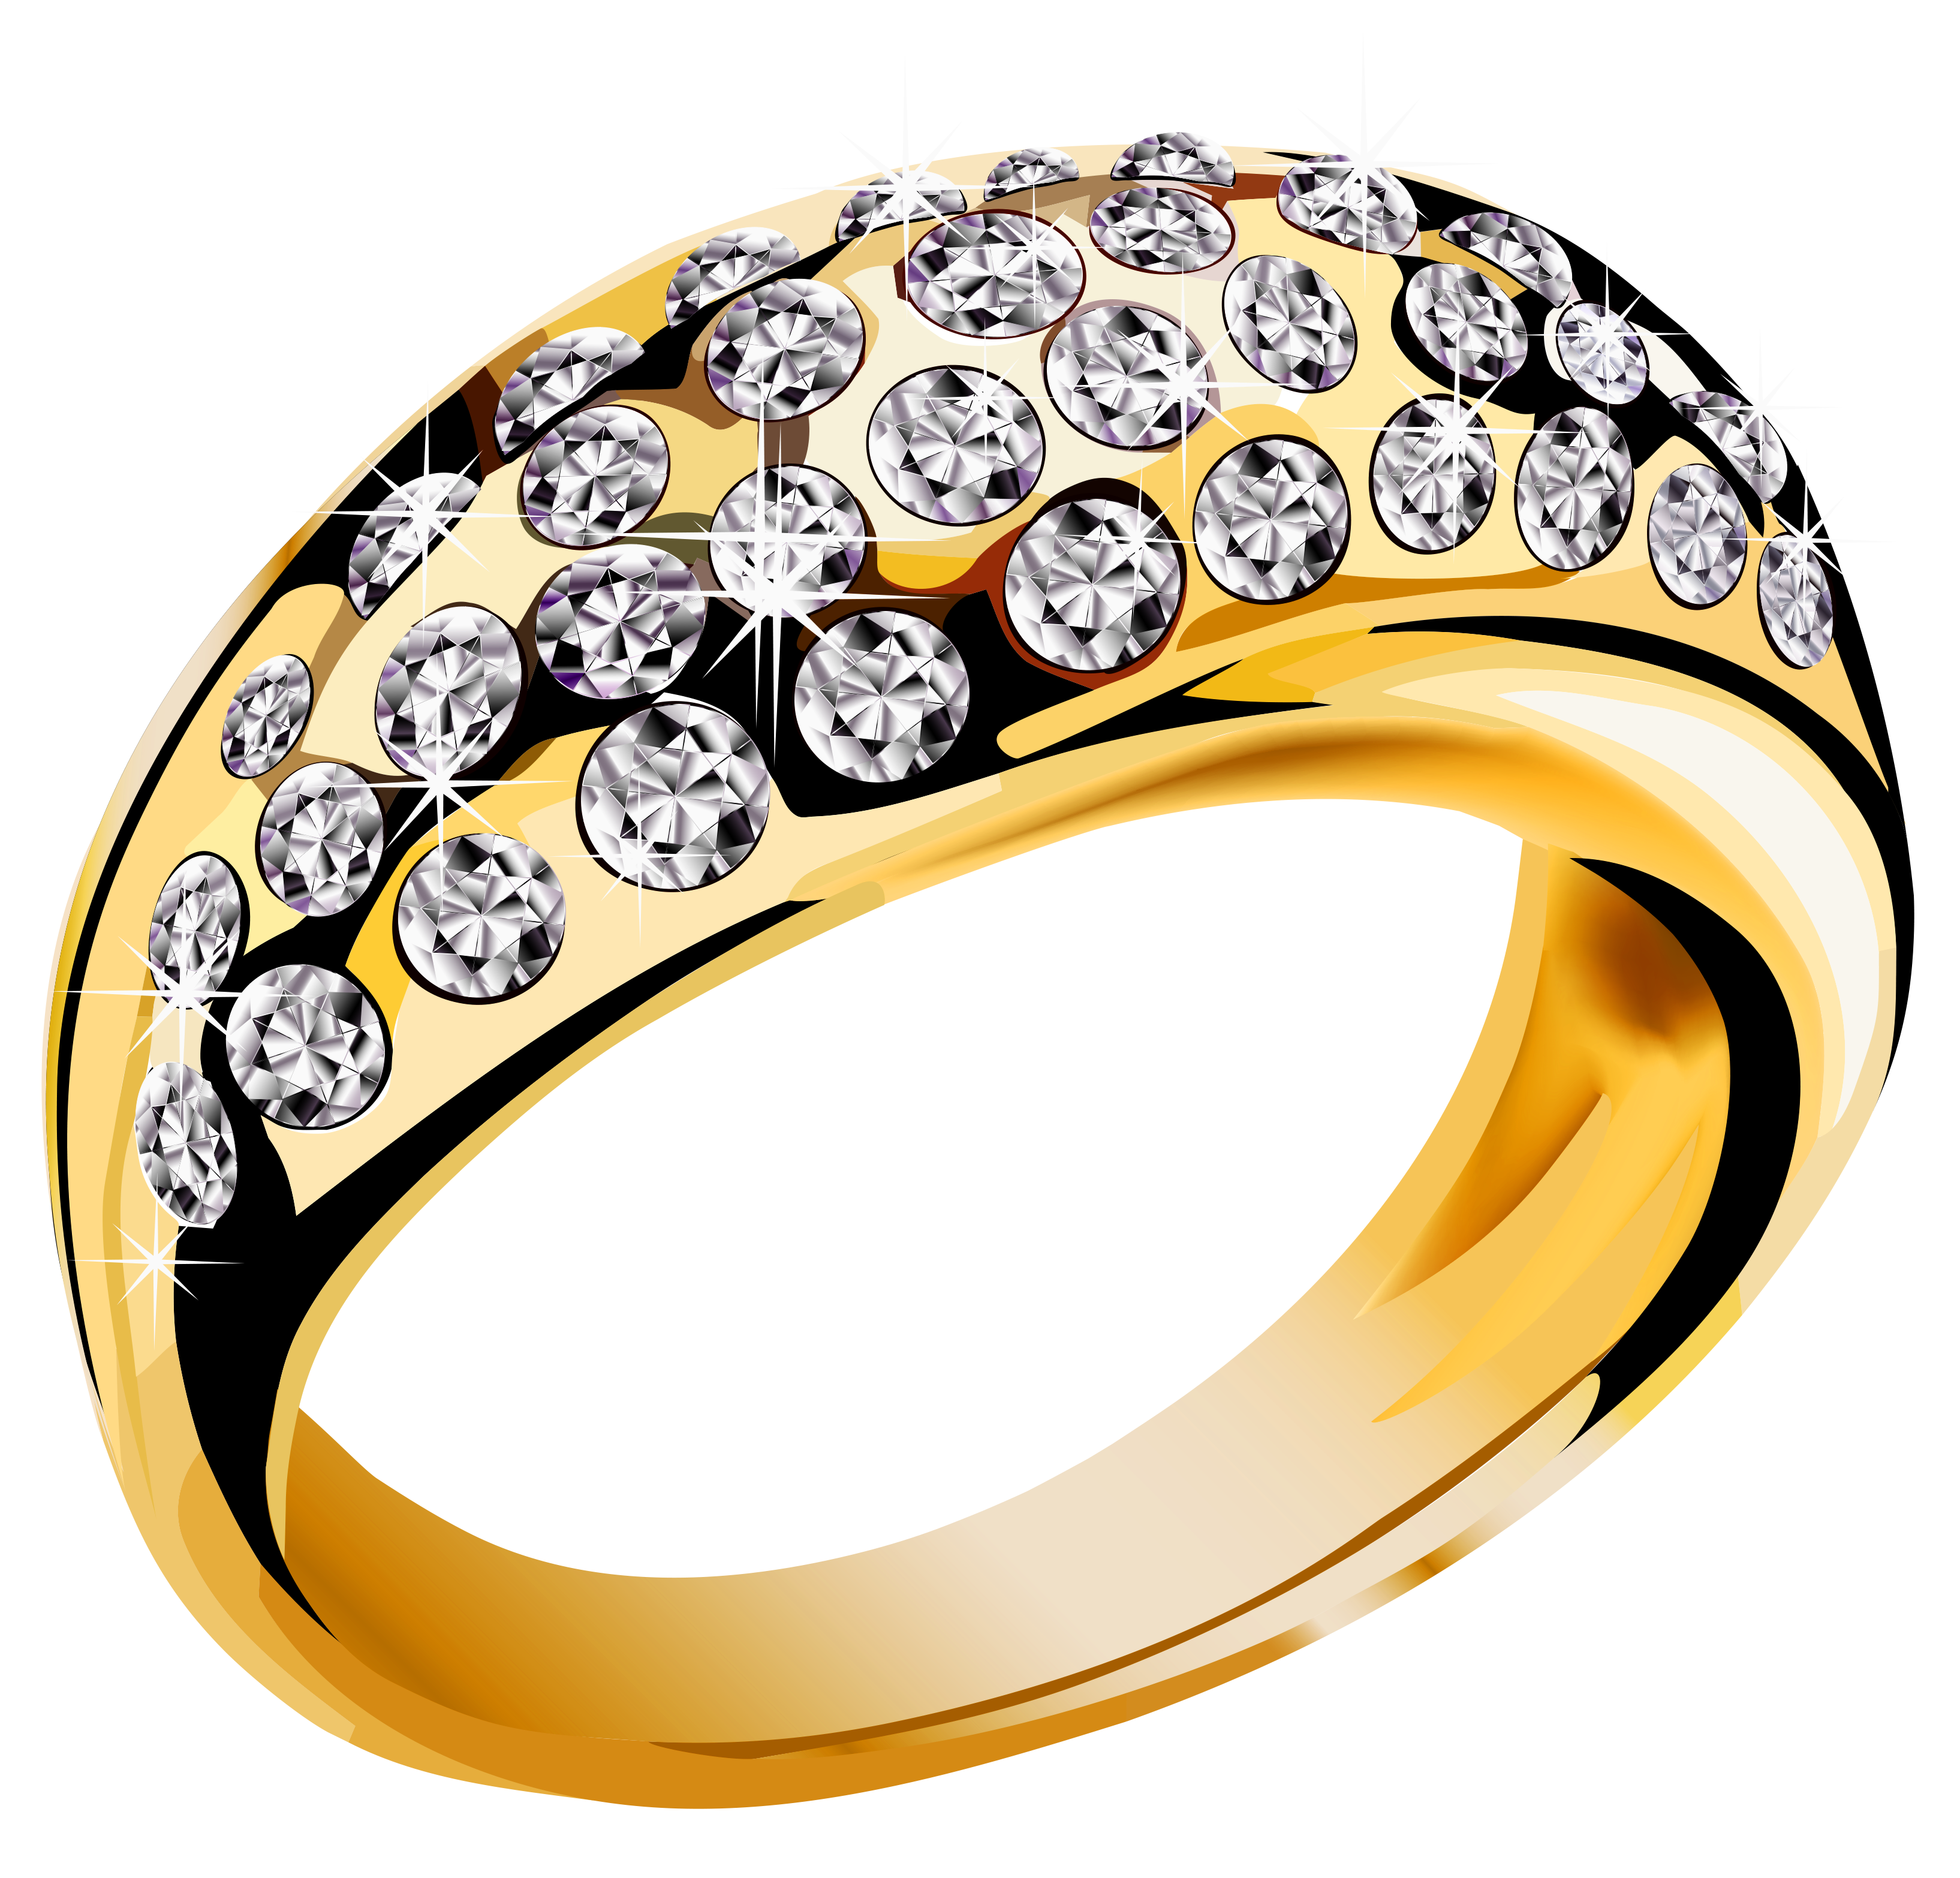 Round stone png. Gold ring with diamonds